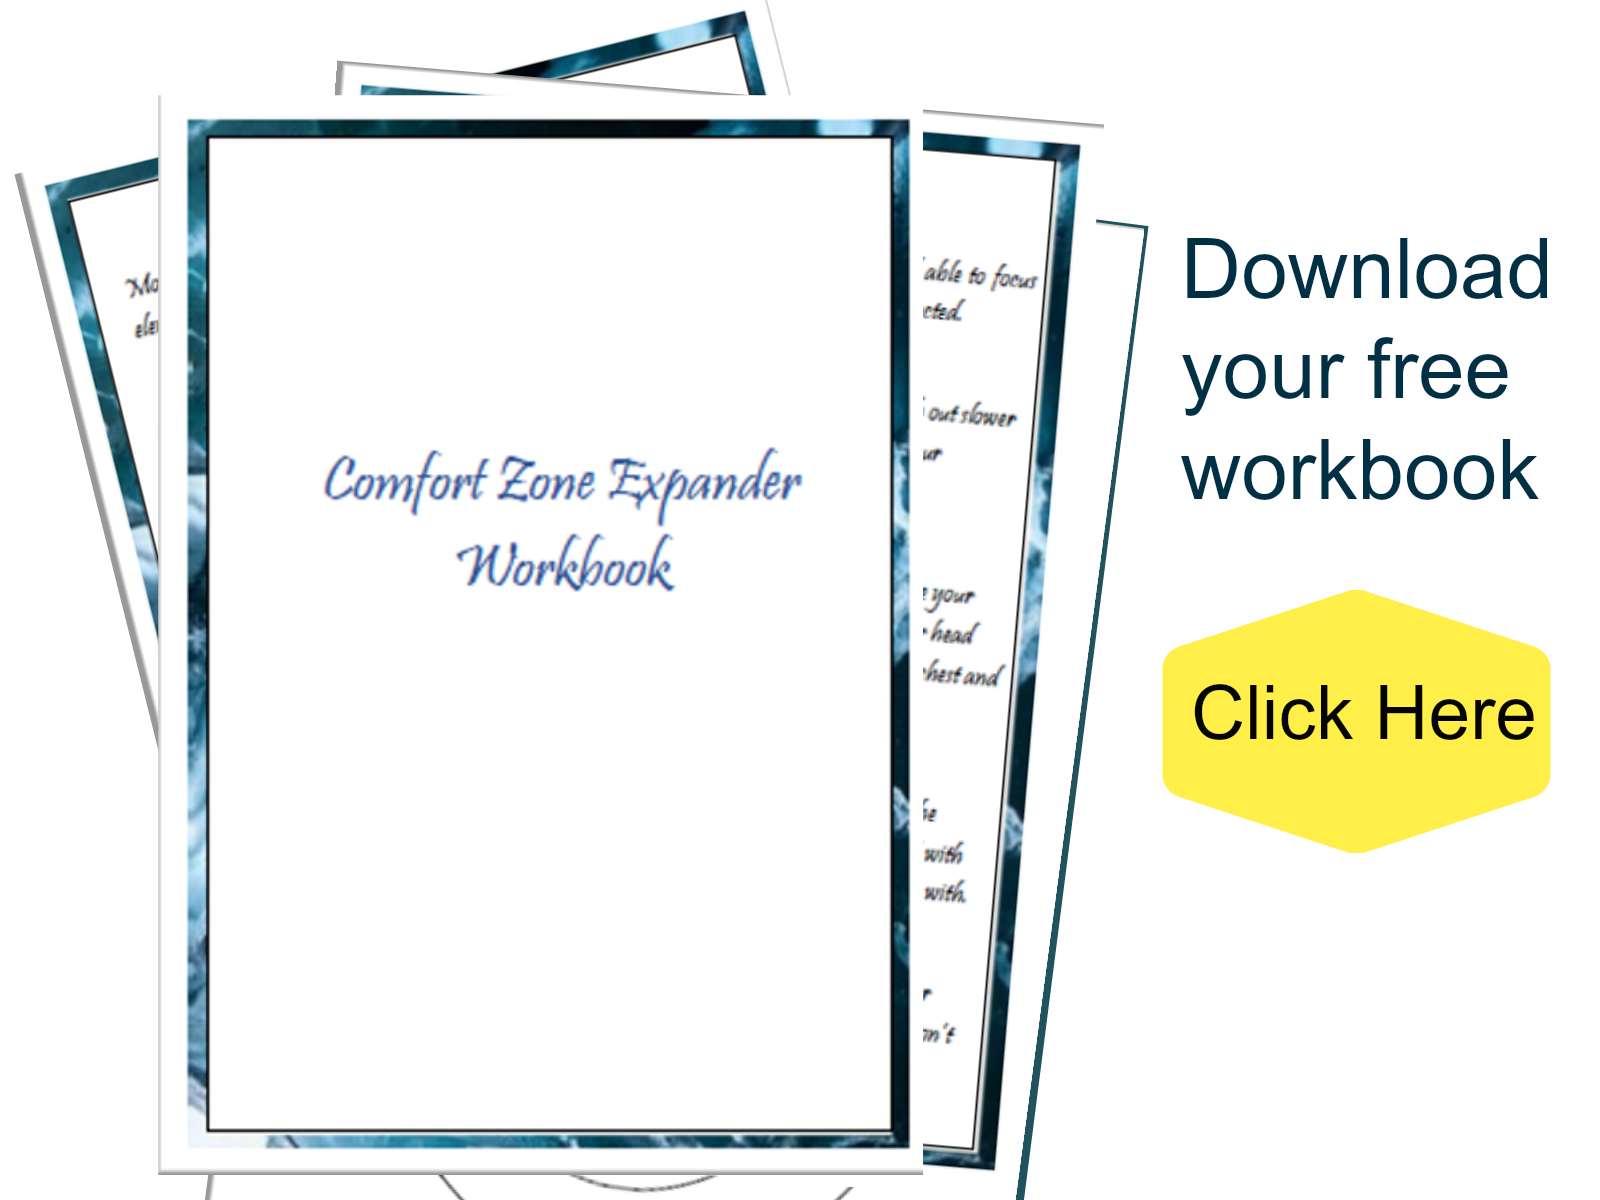 Comfort Zone Expander Workbook